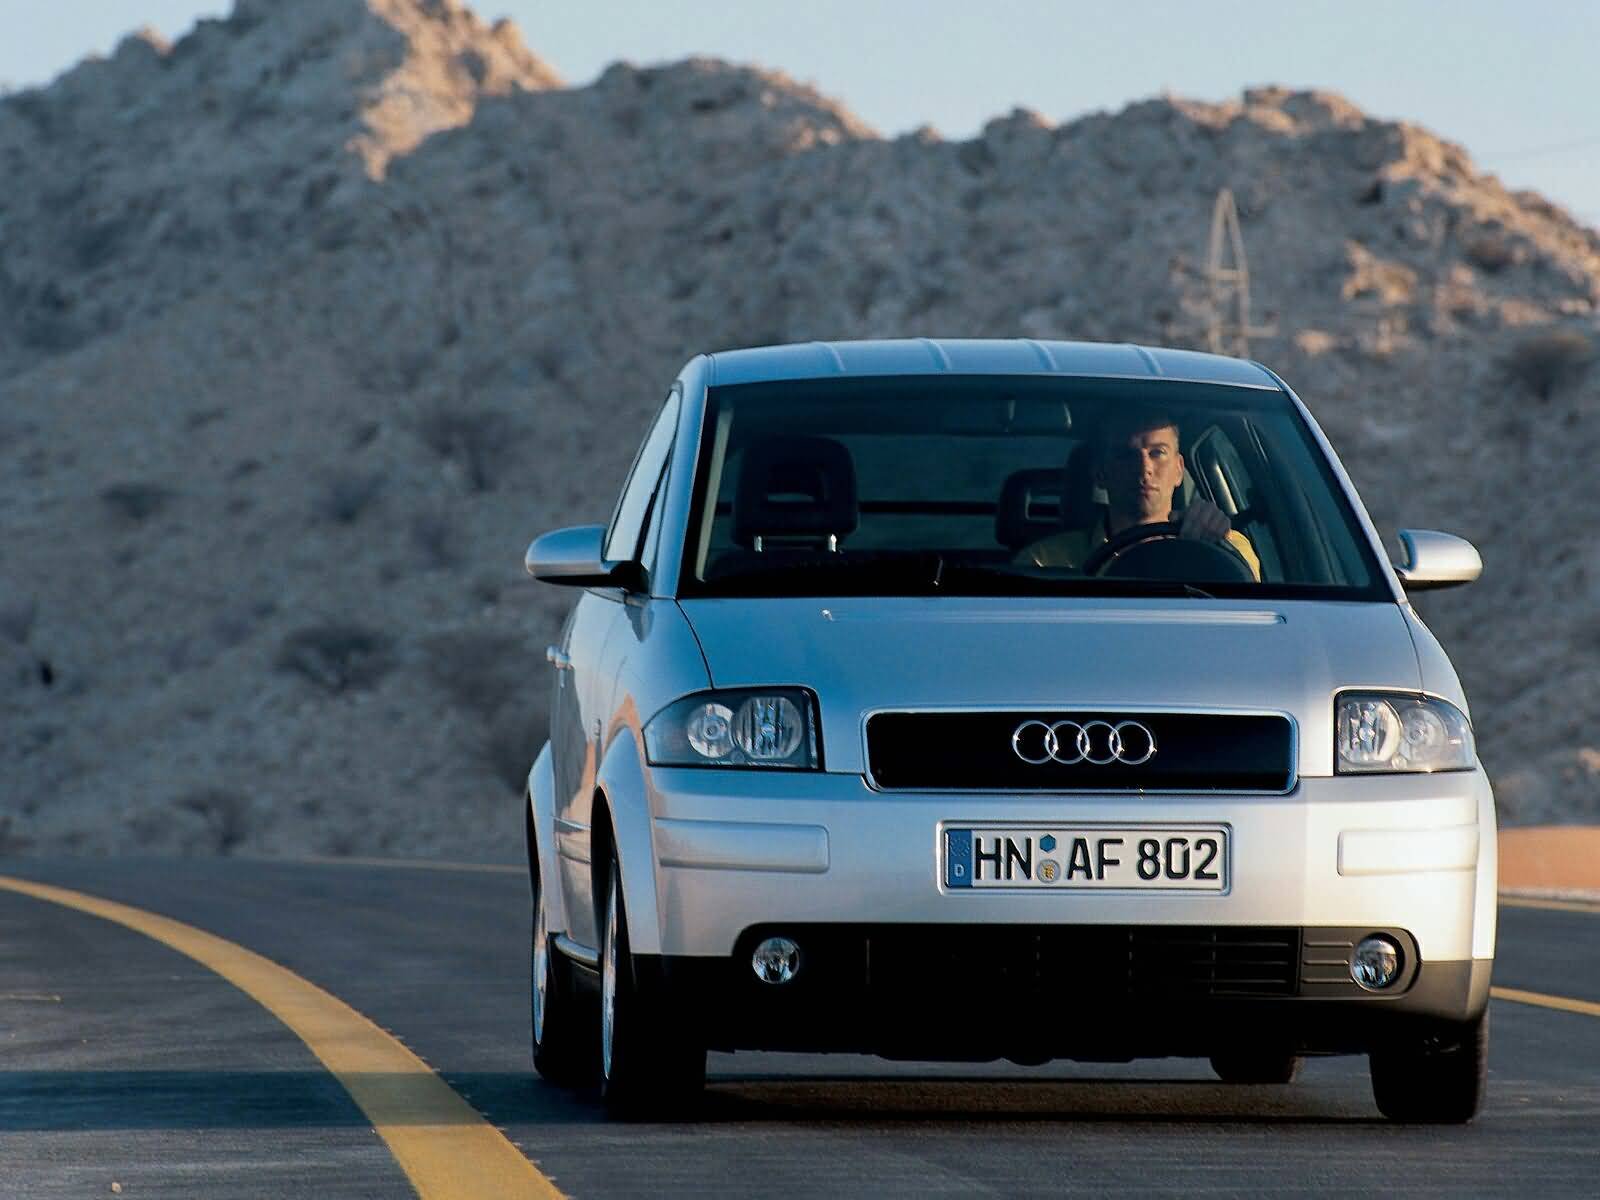 On the road of silver Audi A2 Car